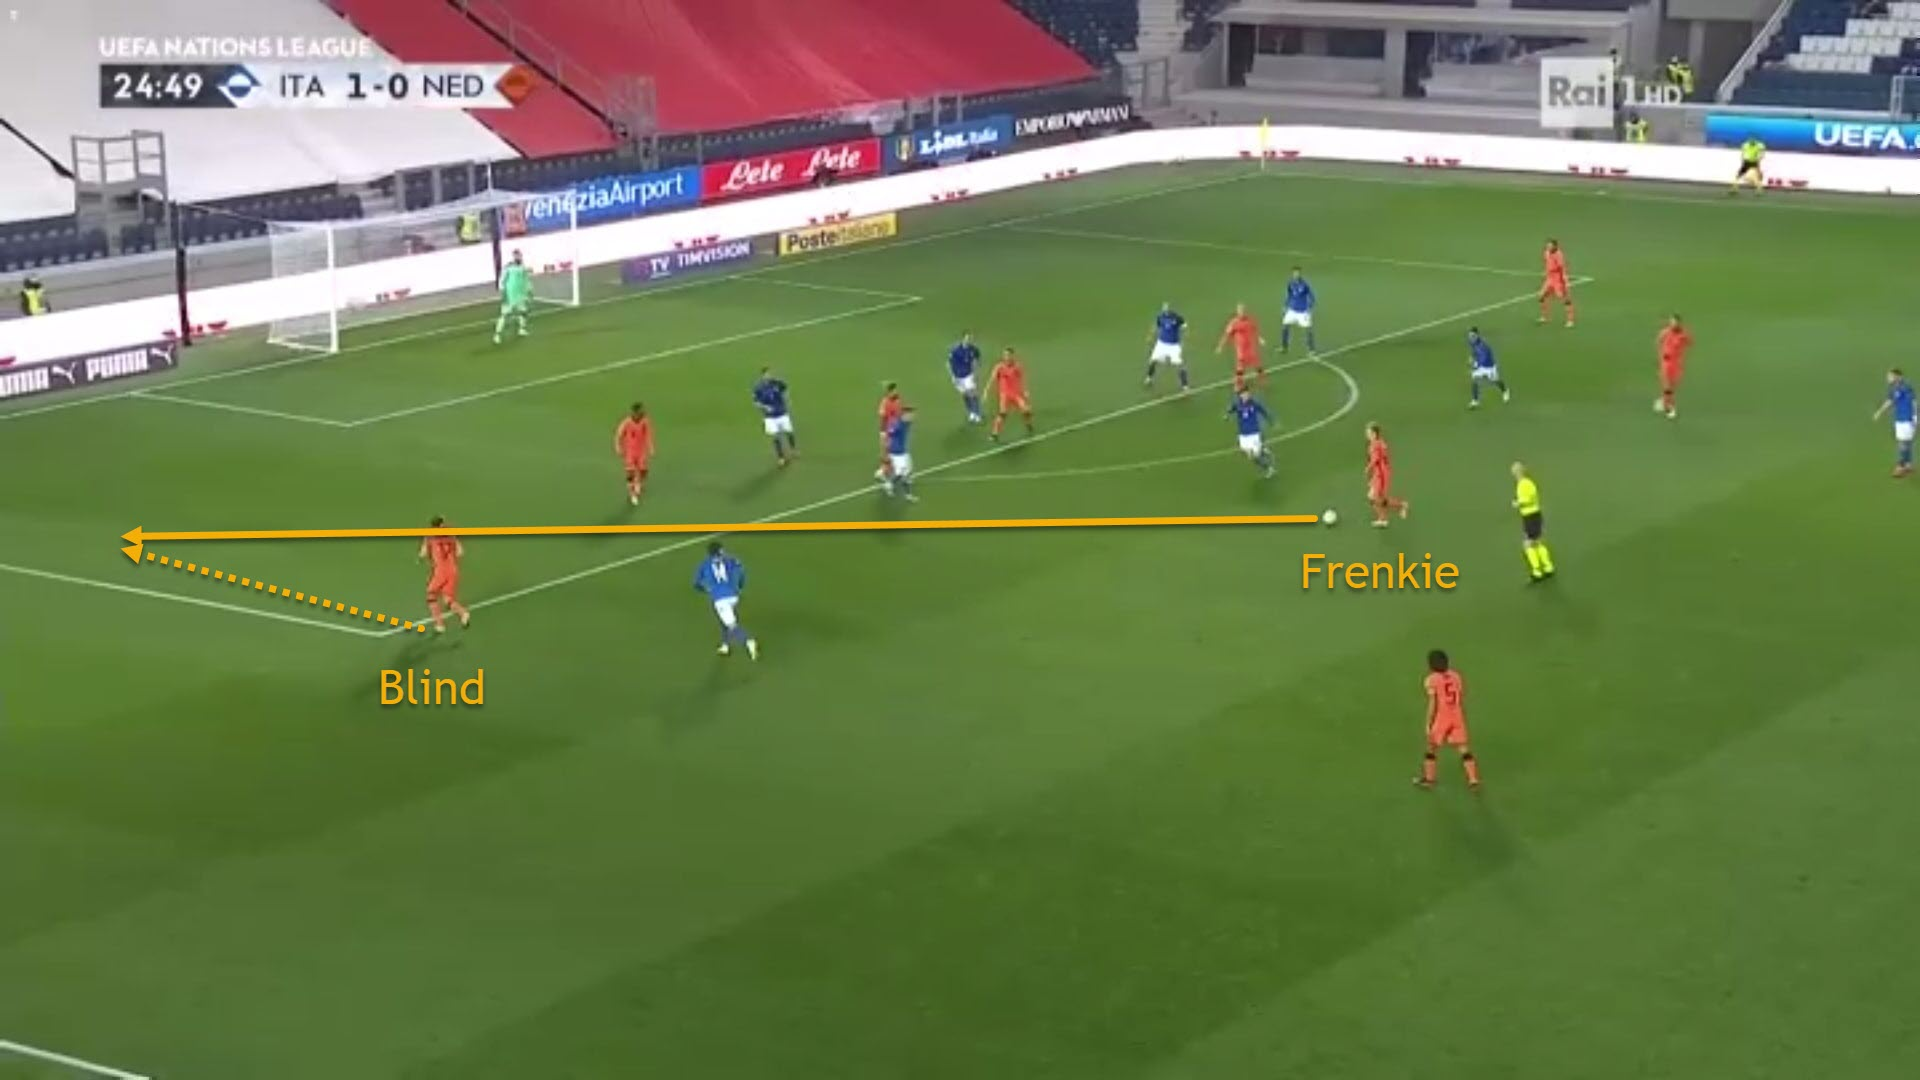 UEFA Nations League 2020/21: Italy vs Netherlands – tactical analysis tactics